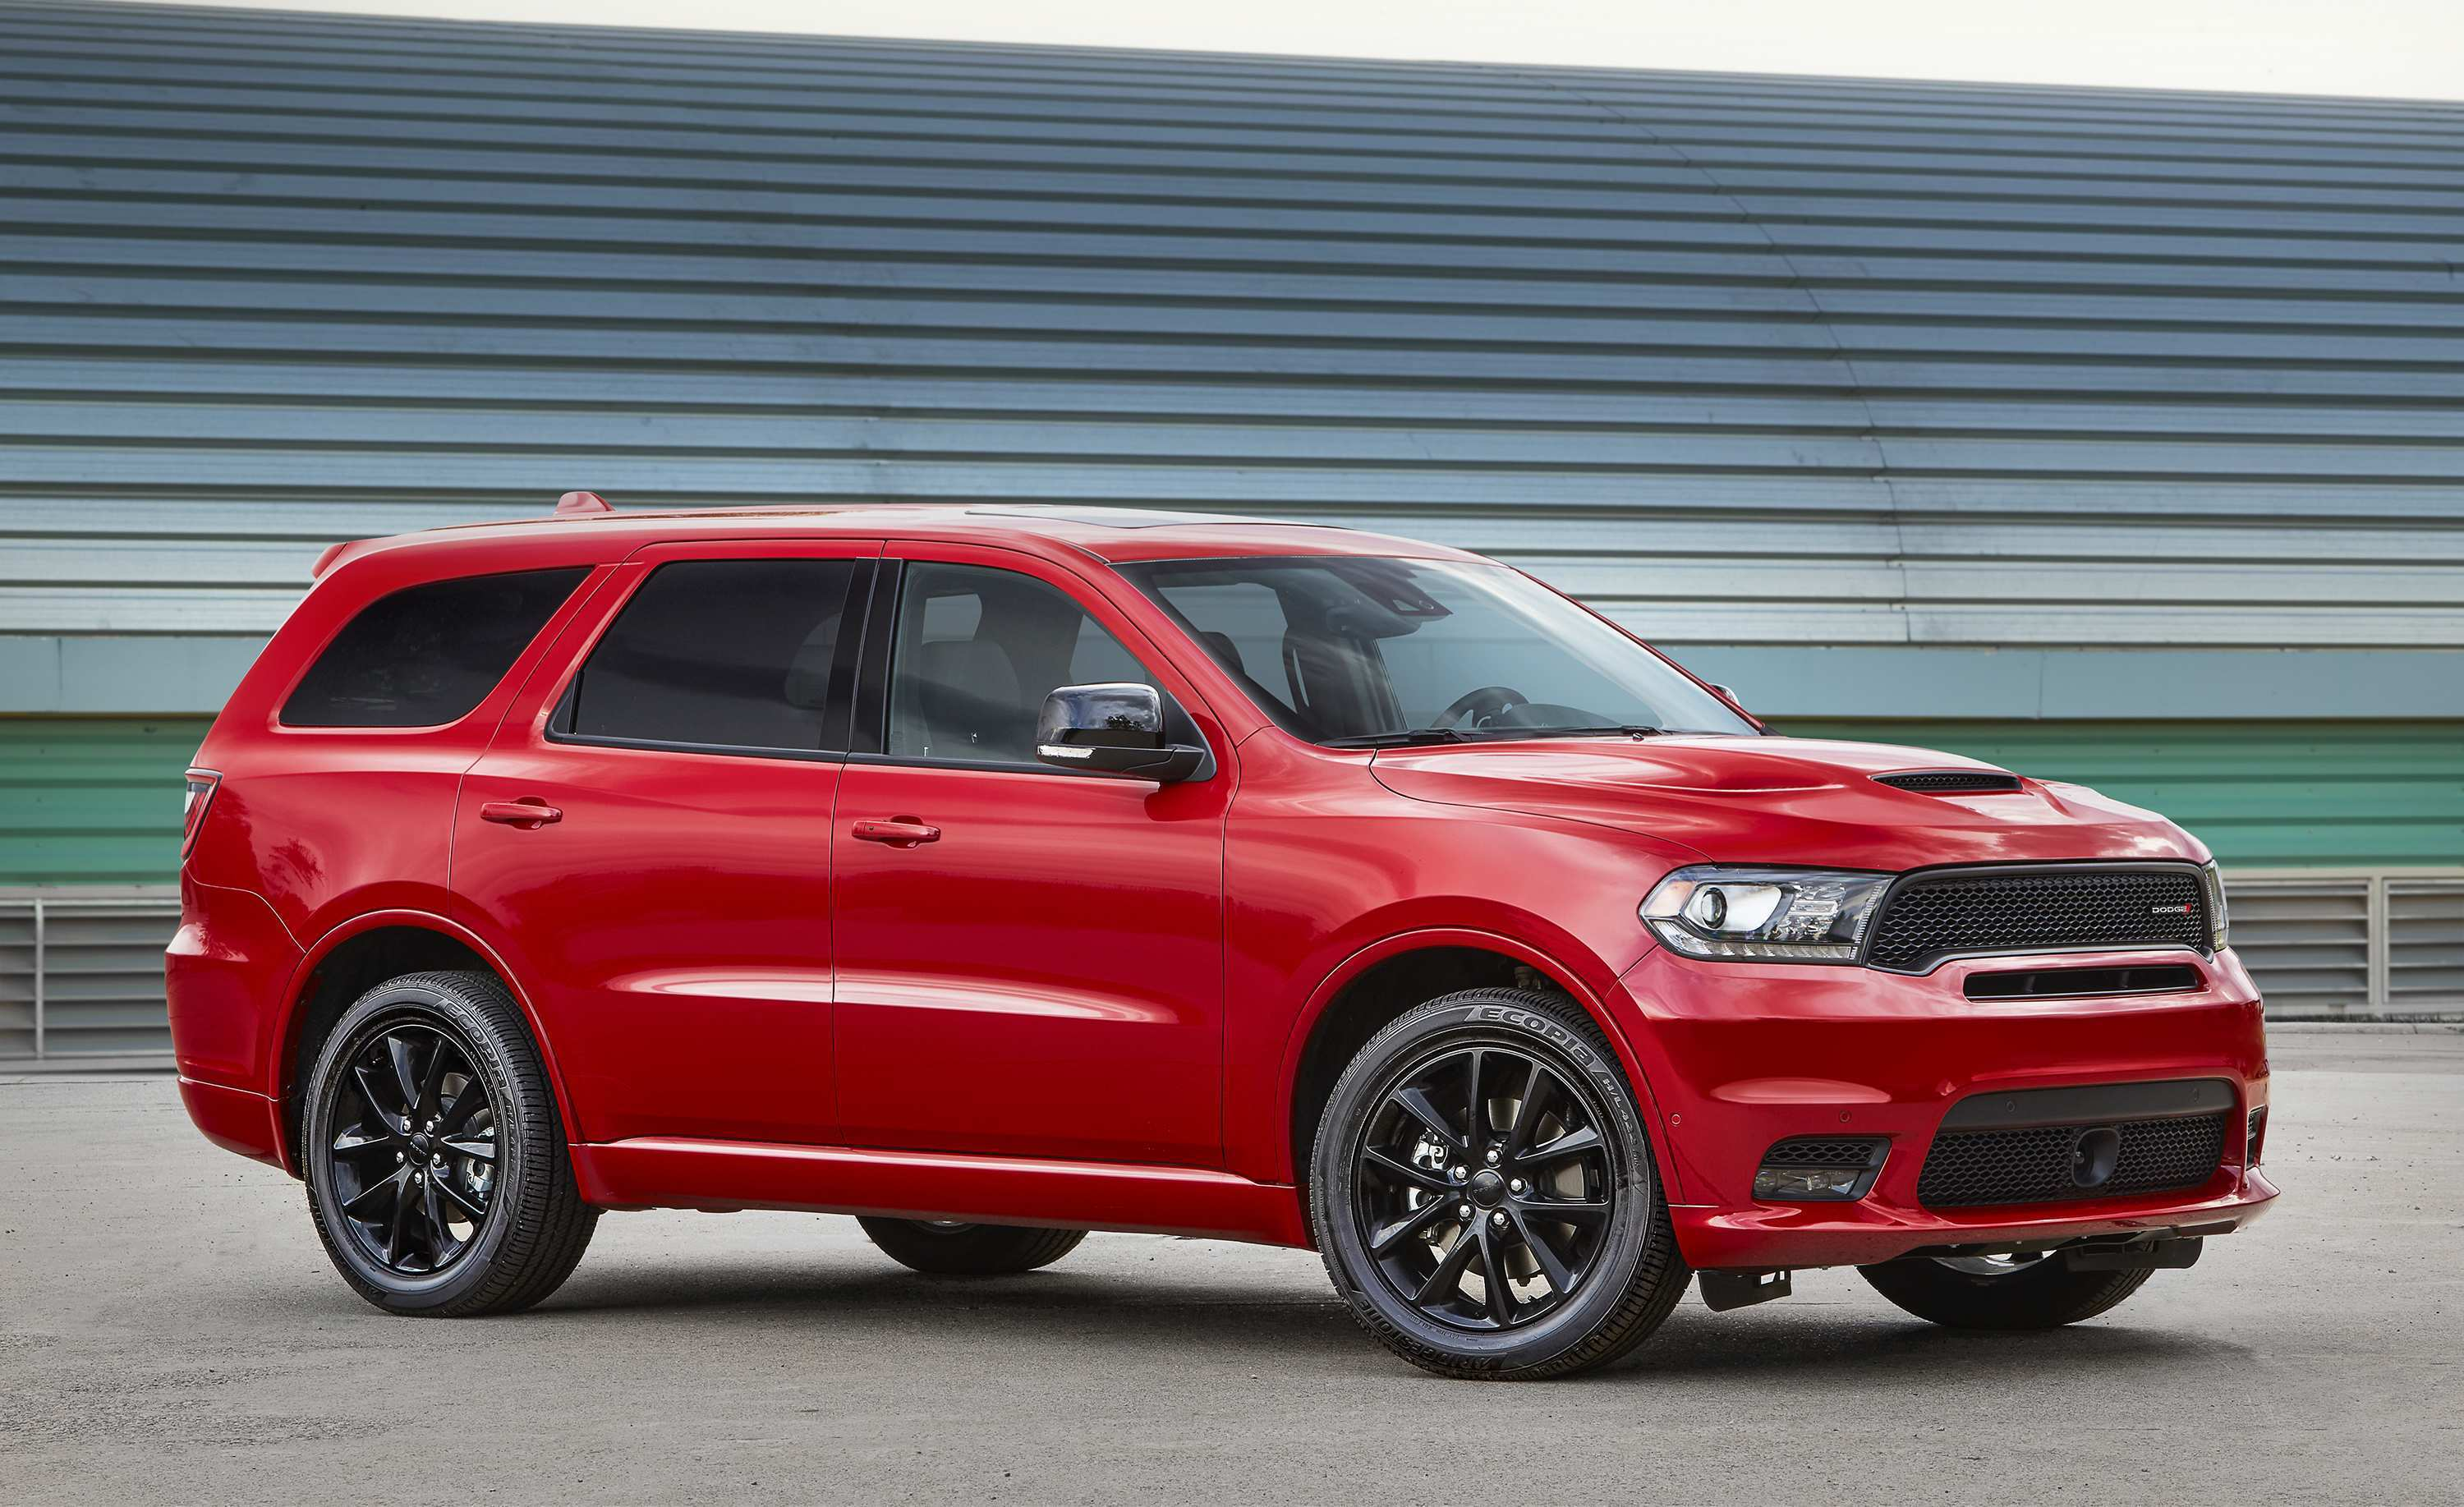 28 A 2020 Dodge Durango Srt Exterior And Interior